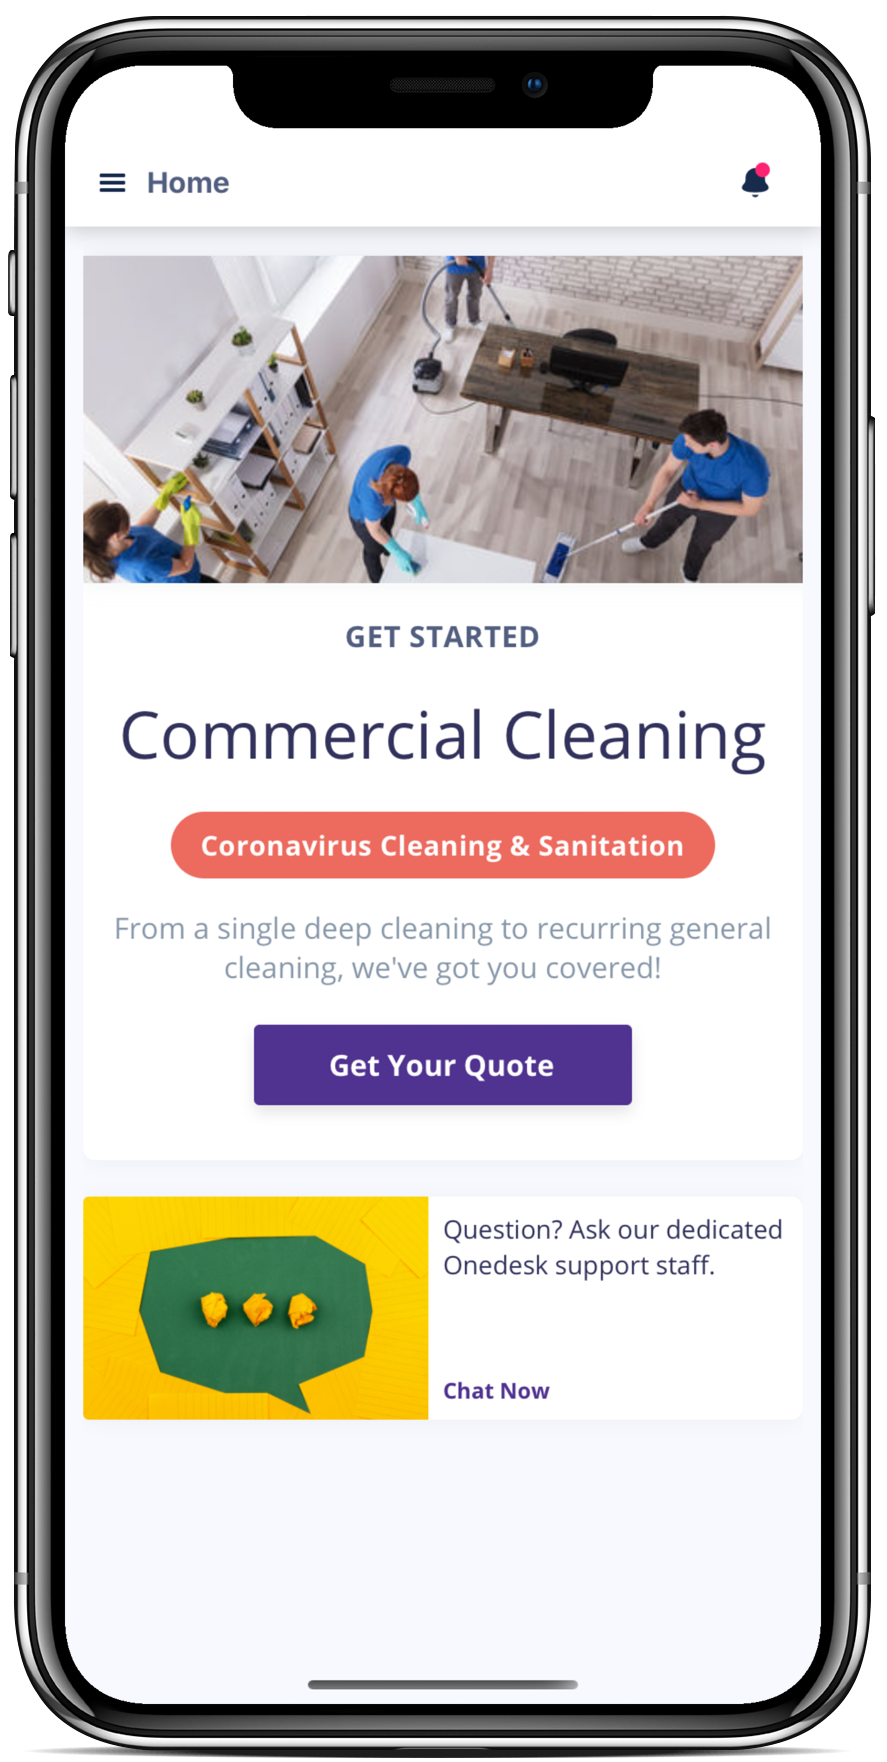 Onedesk Cleaner